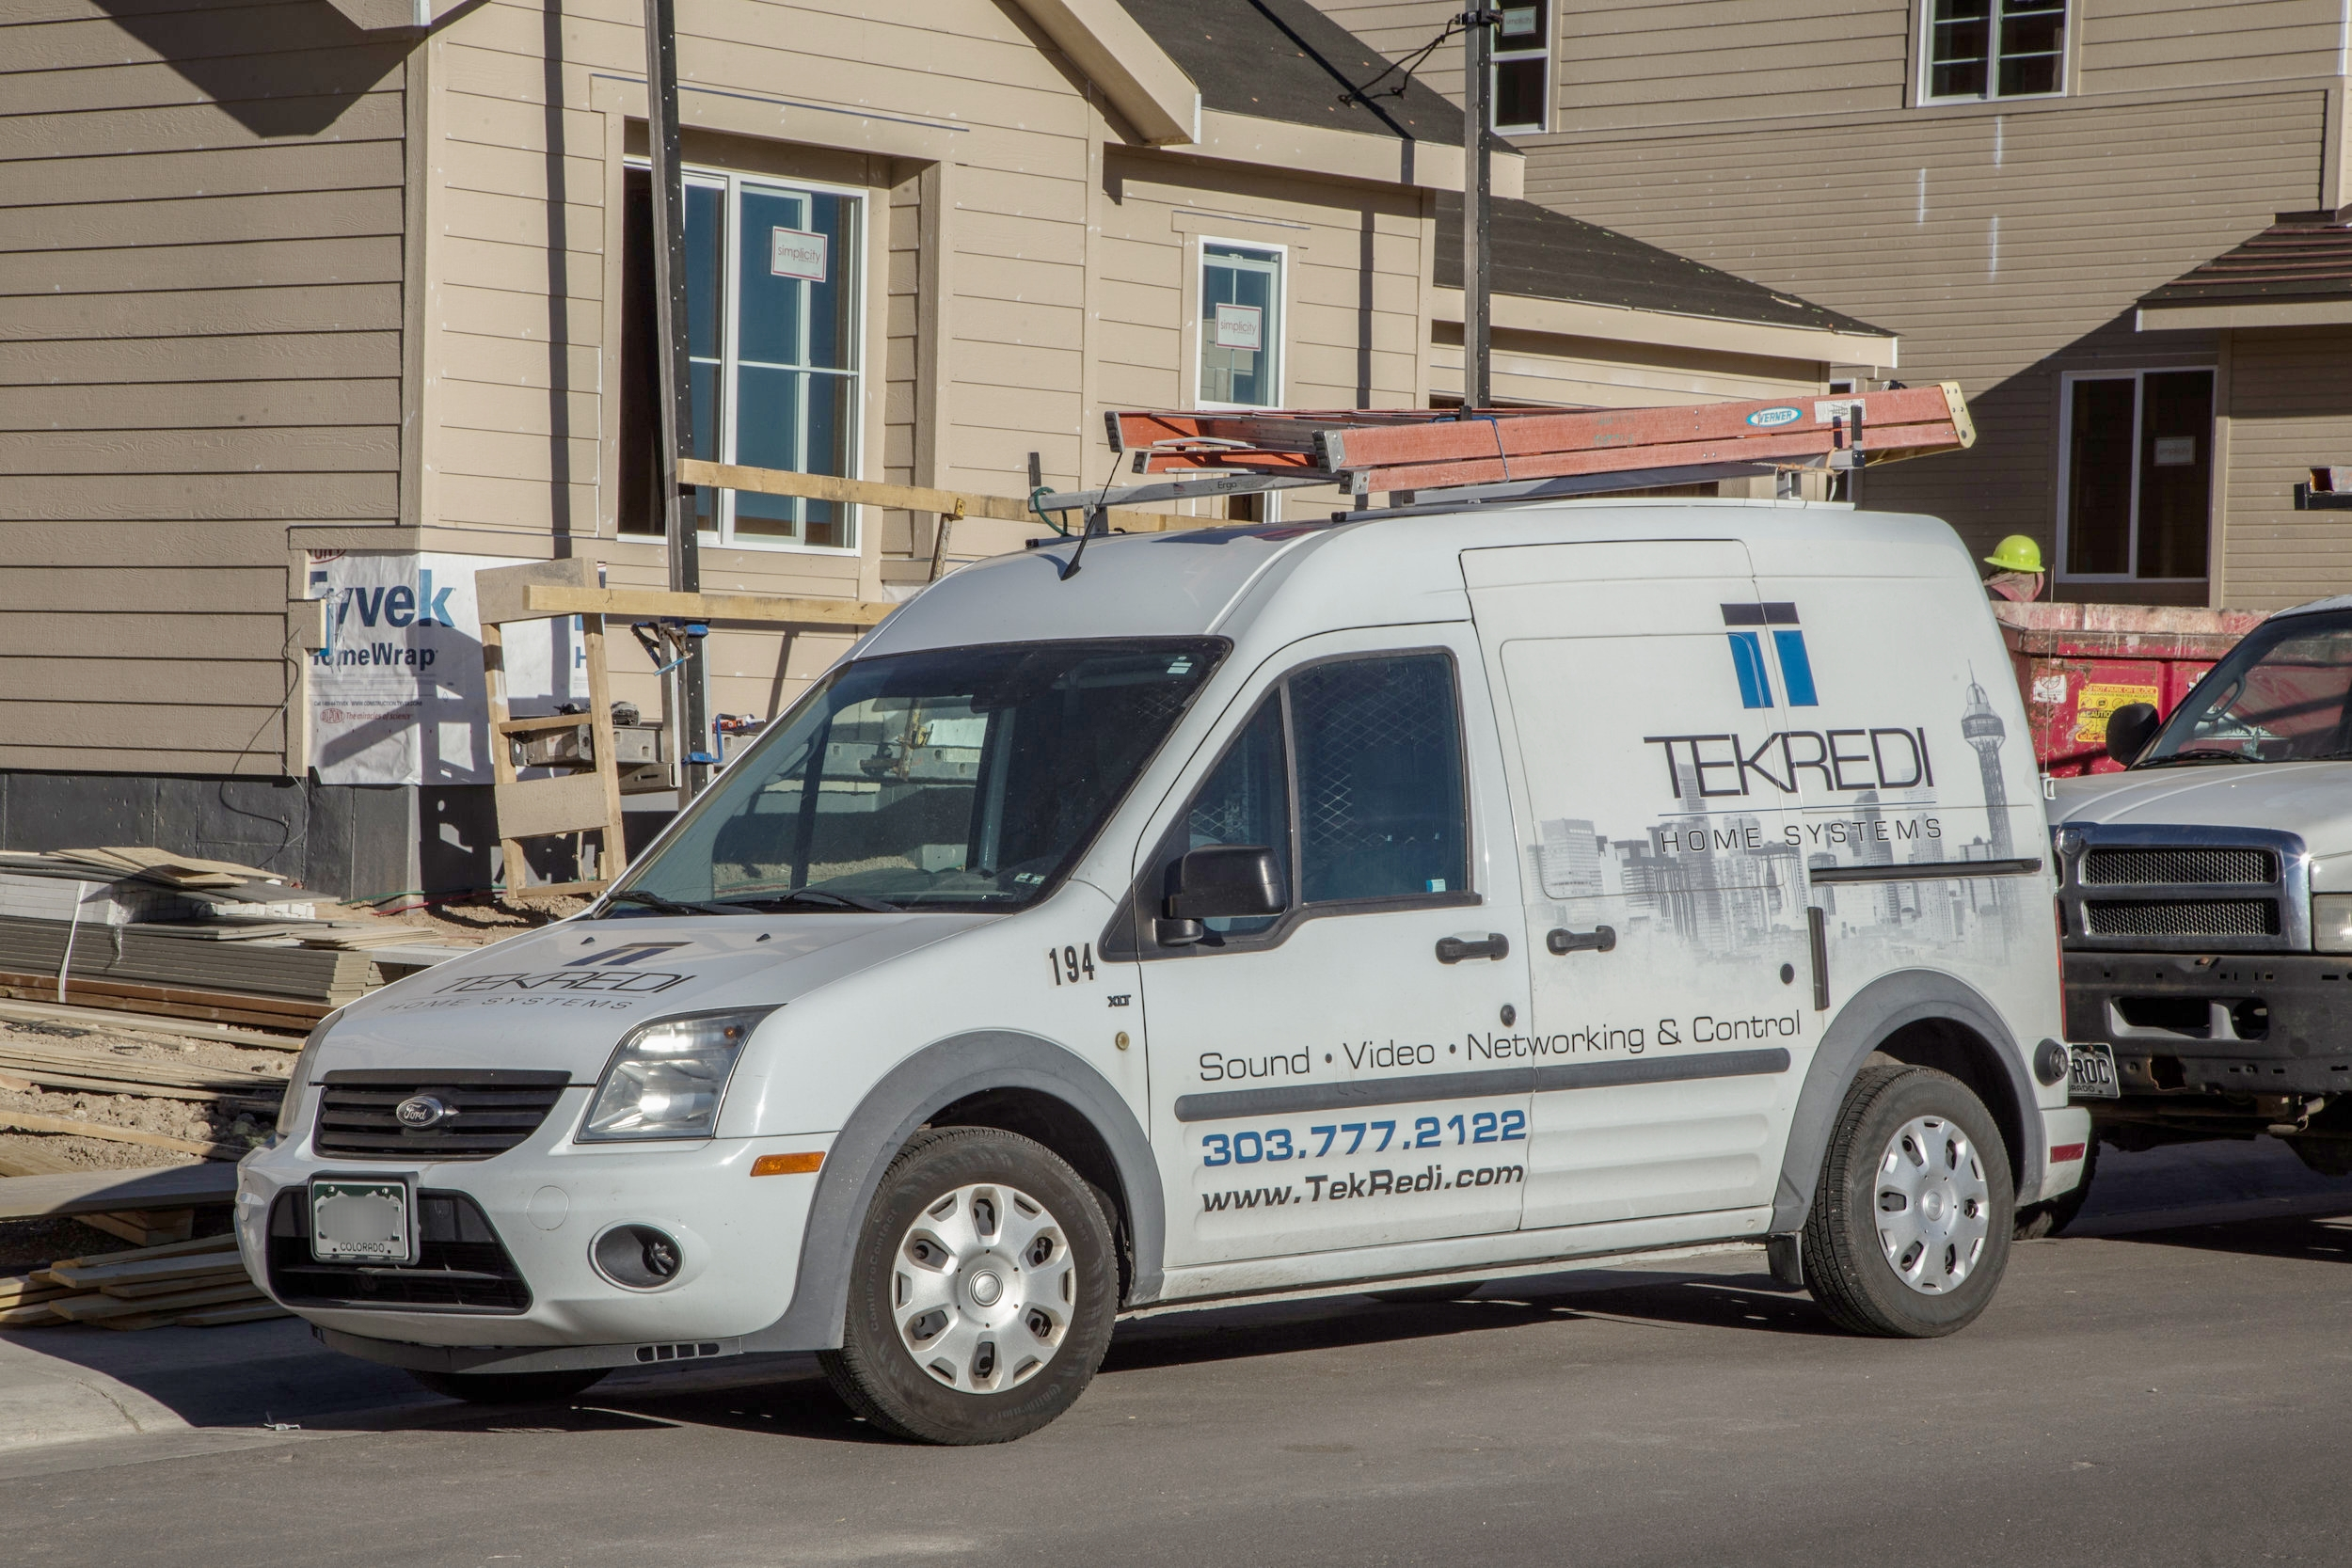 Working closely with our Premier Home Builders and carefully selected Product Suppliers, TekREDI has developed Community and Plan specific packages that are a perfectly balanced blend of functionality and performance for today's tech-savvy Home Owner.